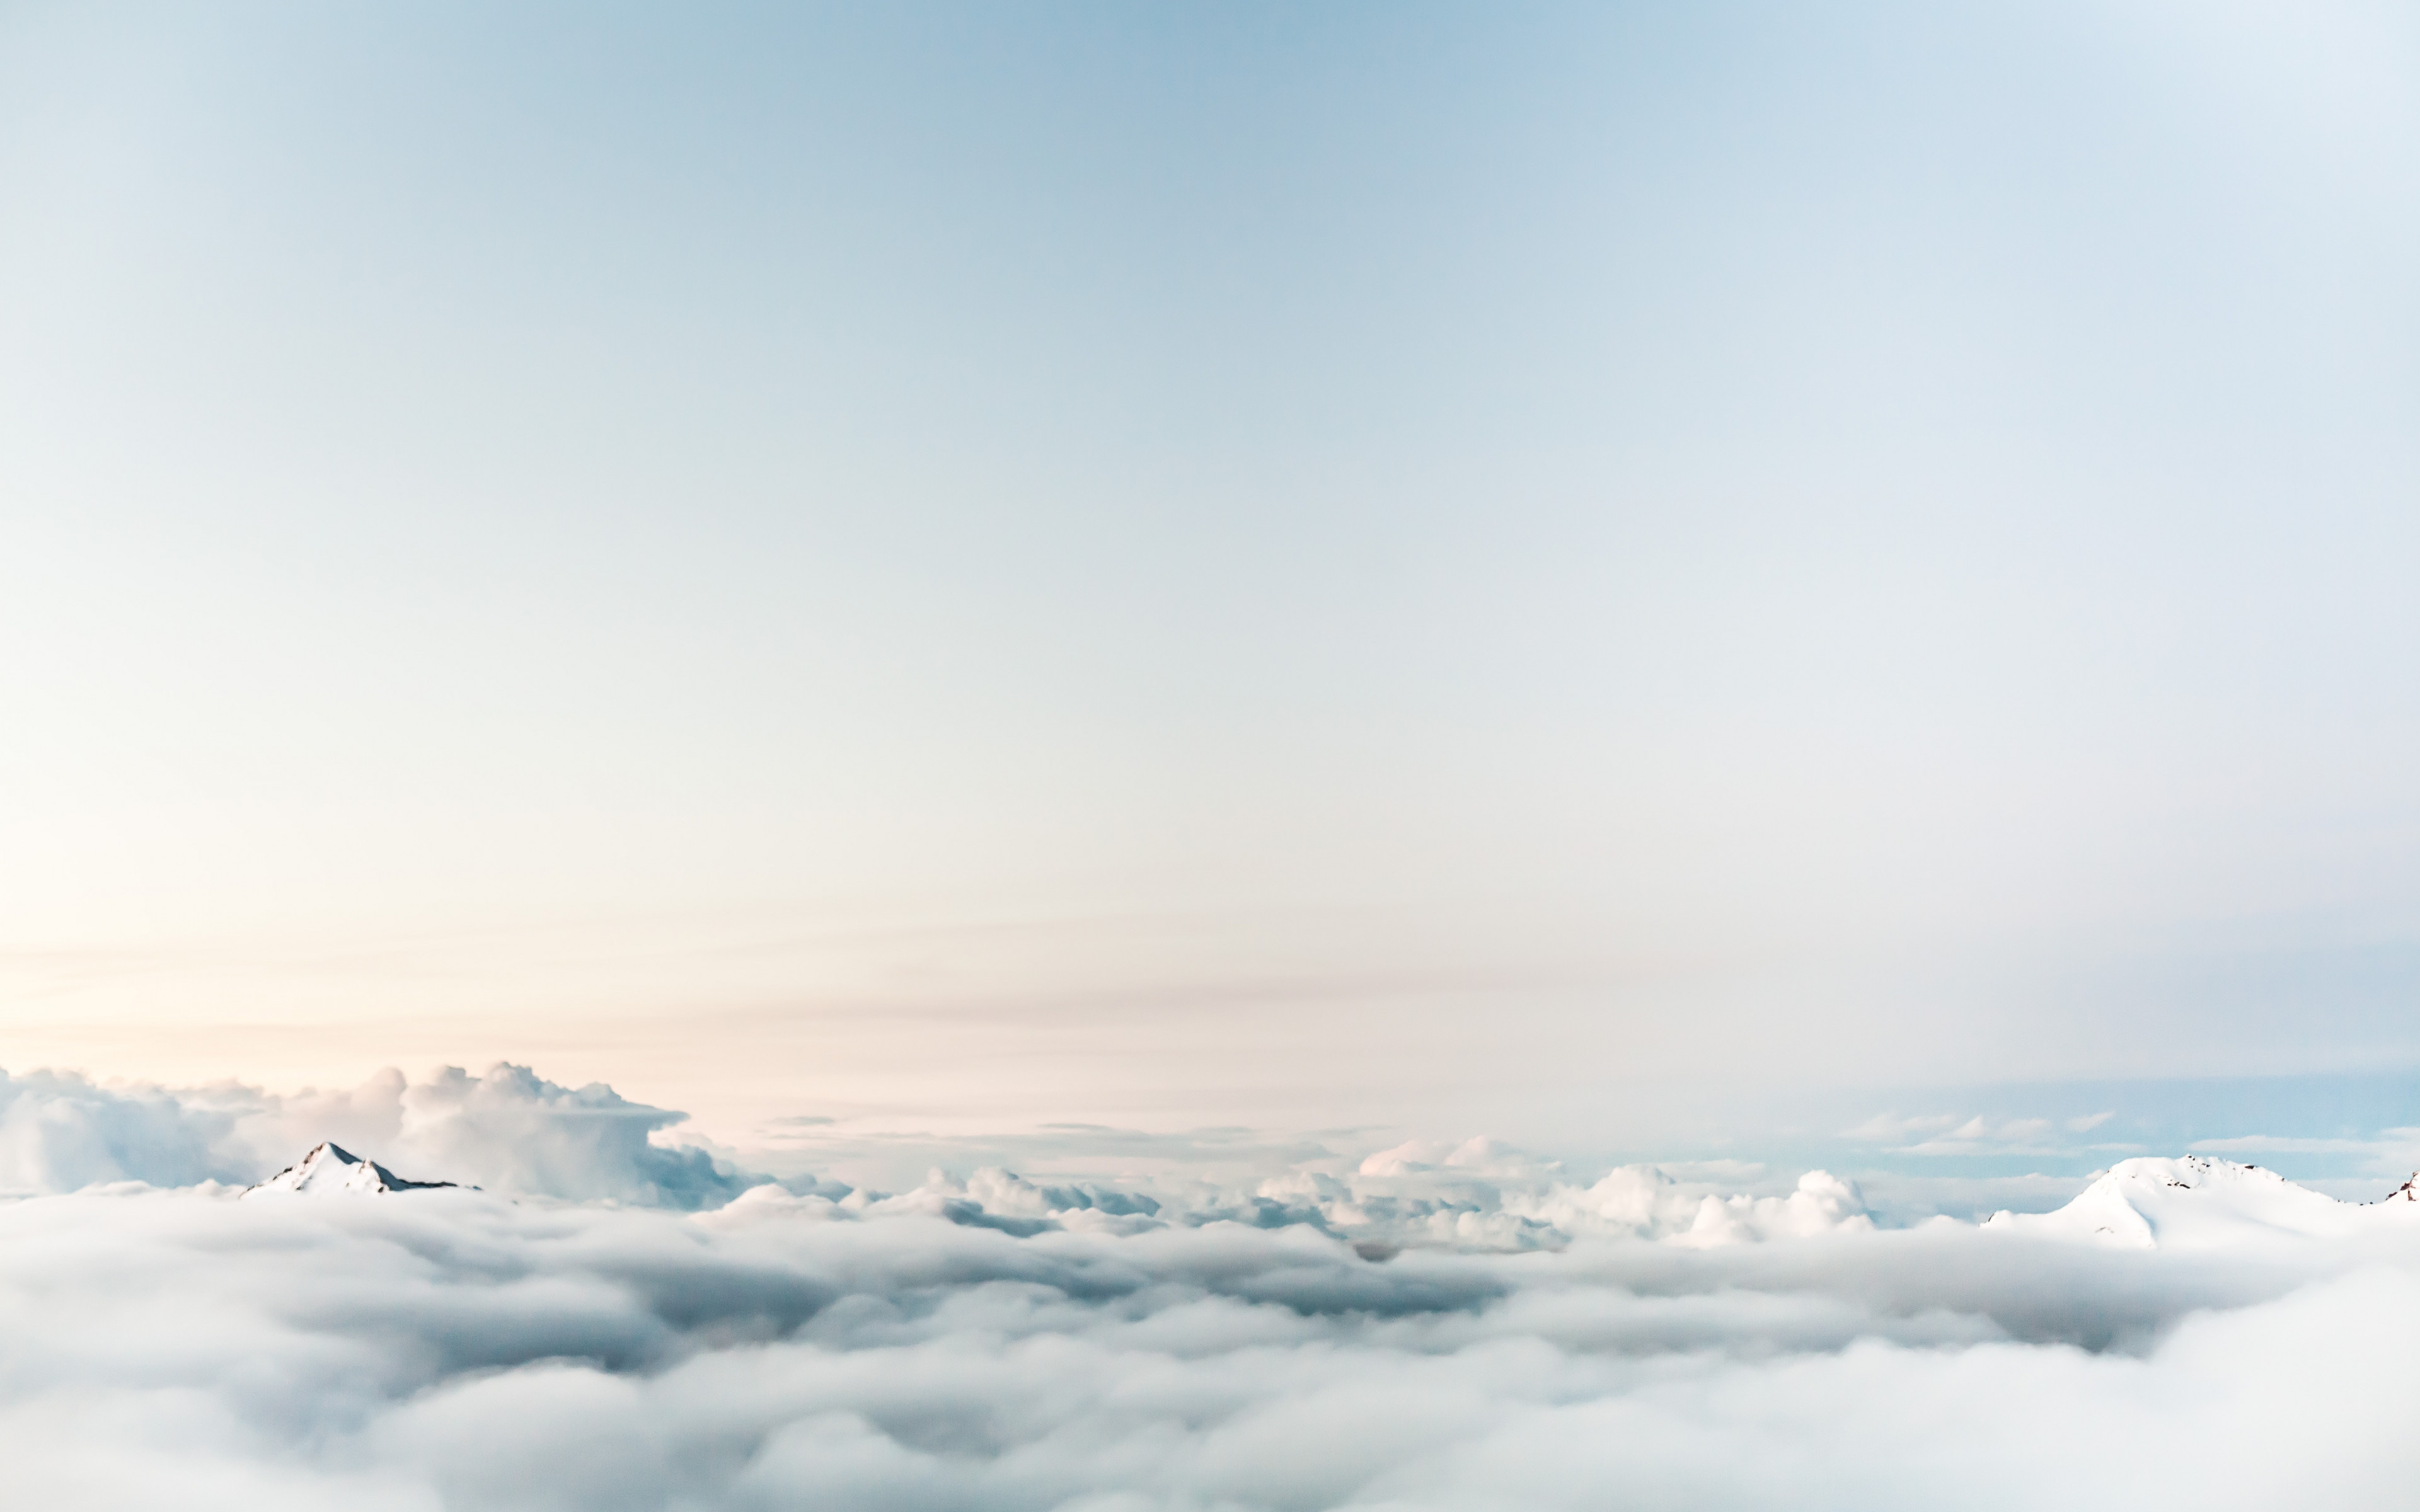 Floating on clouds wallpaper 3840x2400